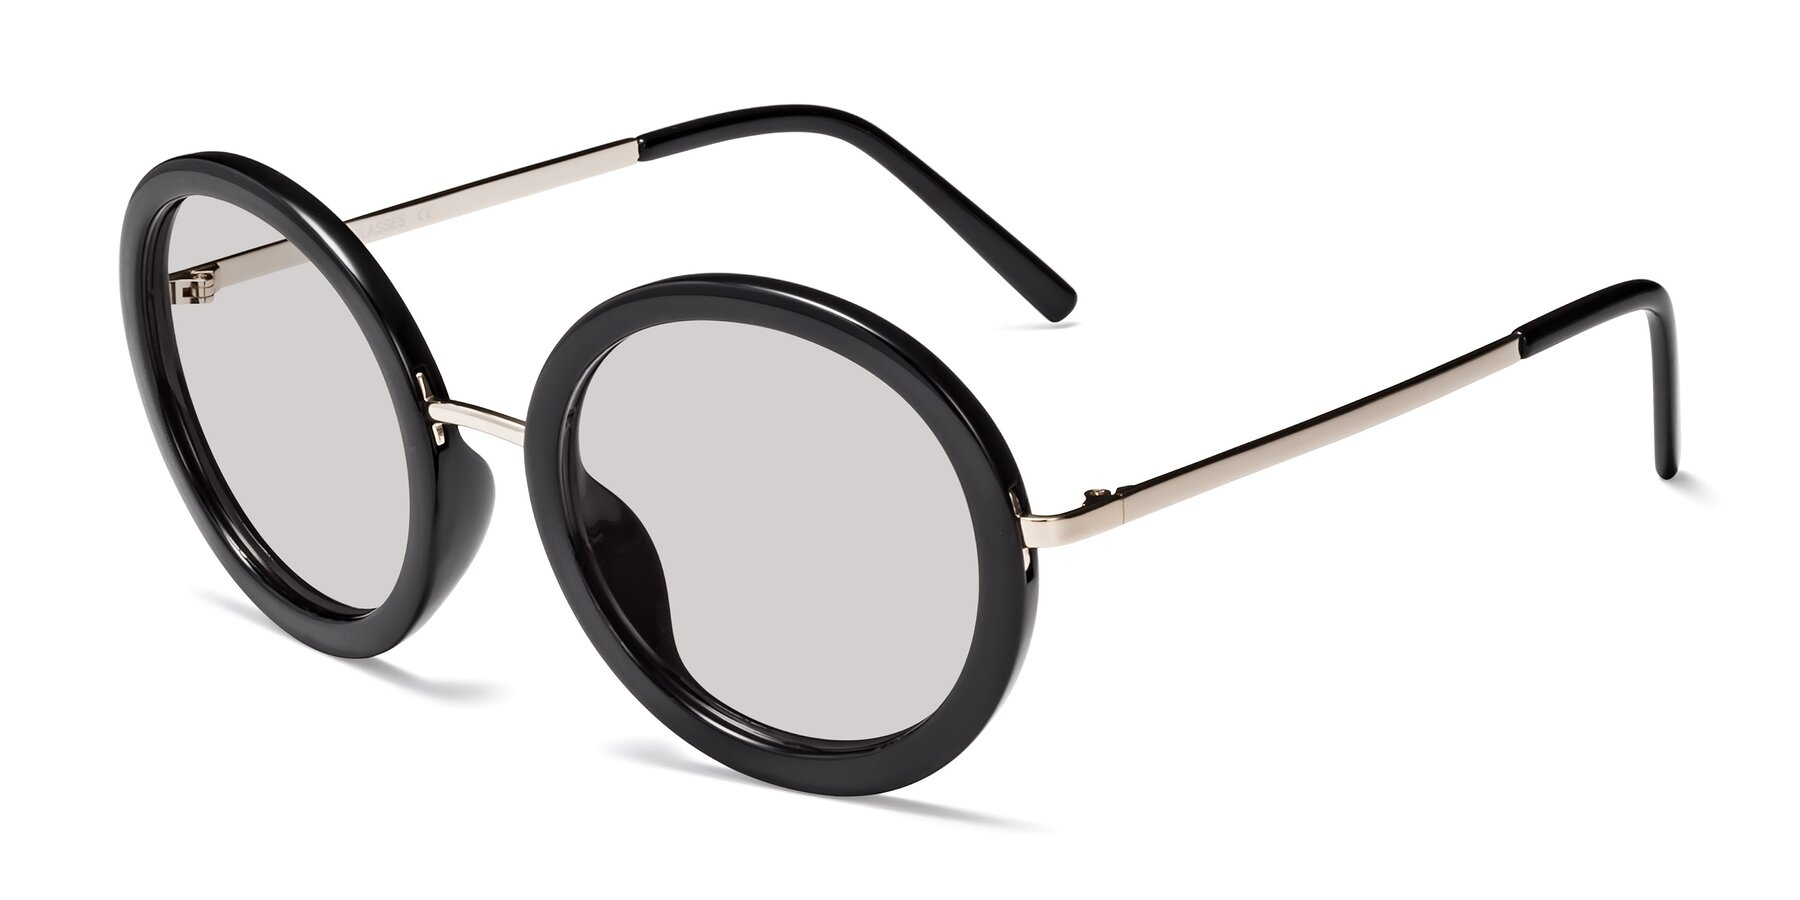 Angle of Bloom in Black with Light Gray Tinted Lenses